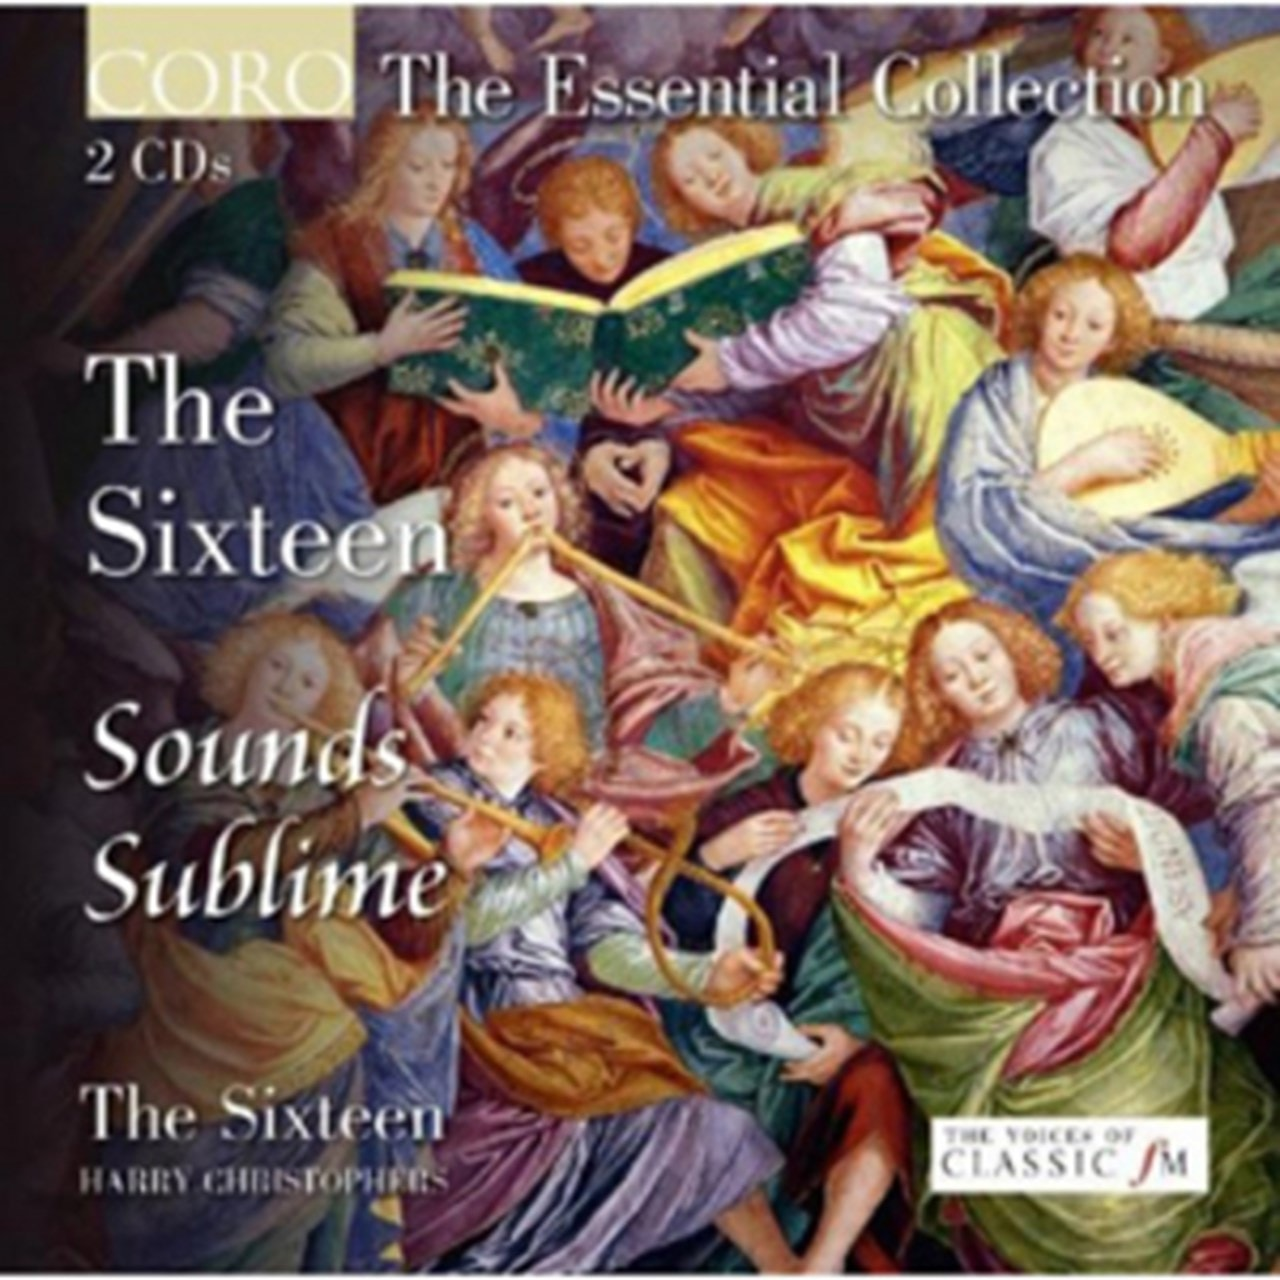 The Sixteen: Sounds Sublime - 1